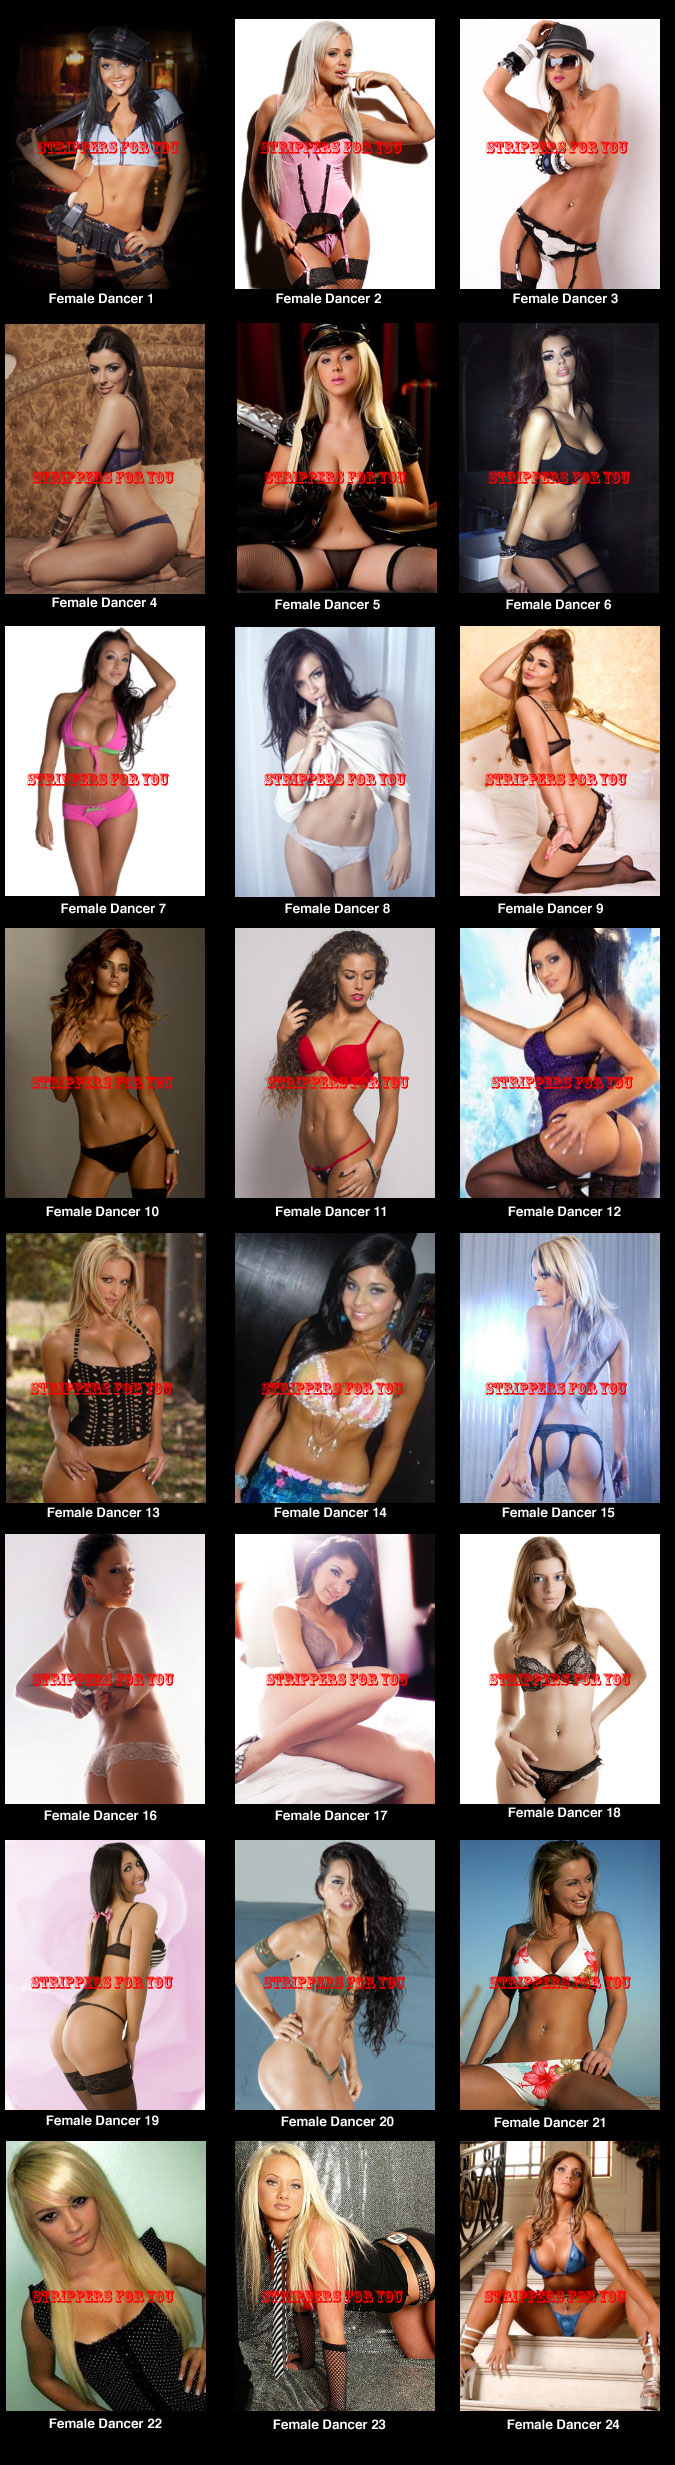 Denver female strippers